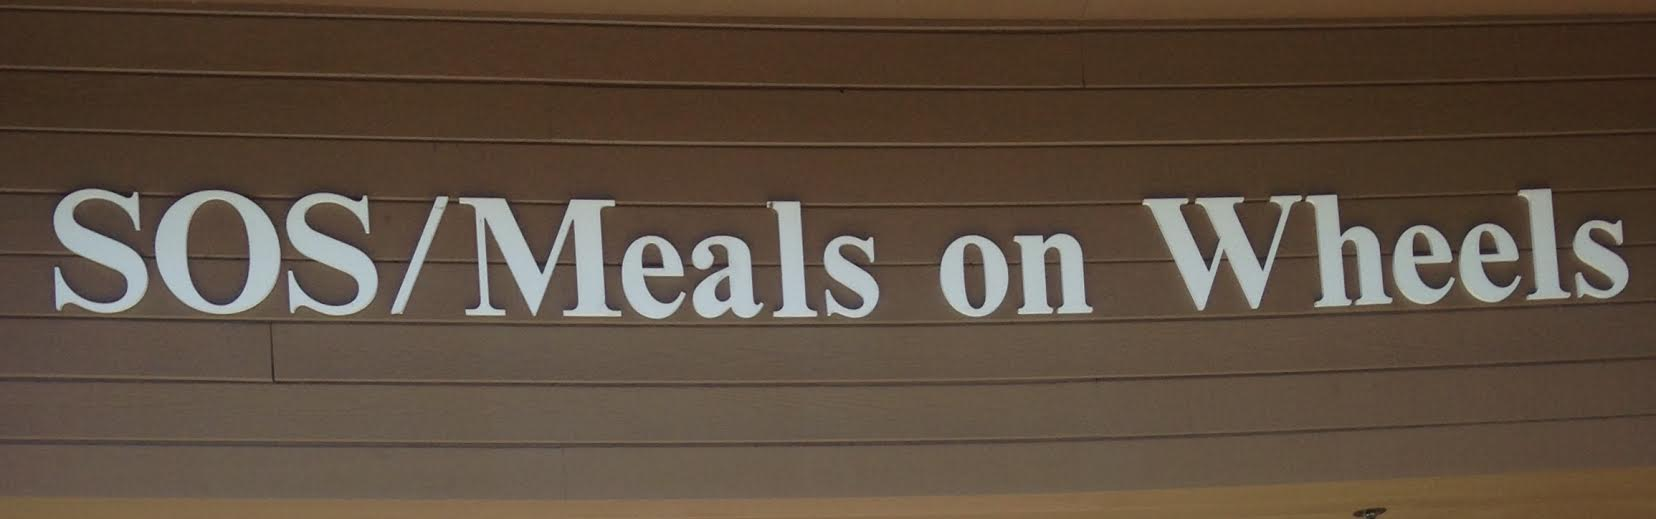 SOS-Meals on Wheels, San Leandro, CA - Localwise business profile picture